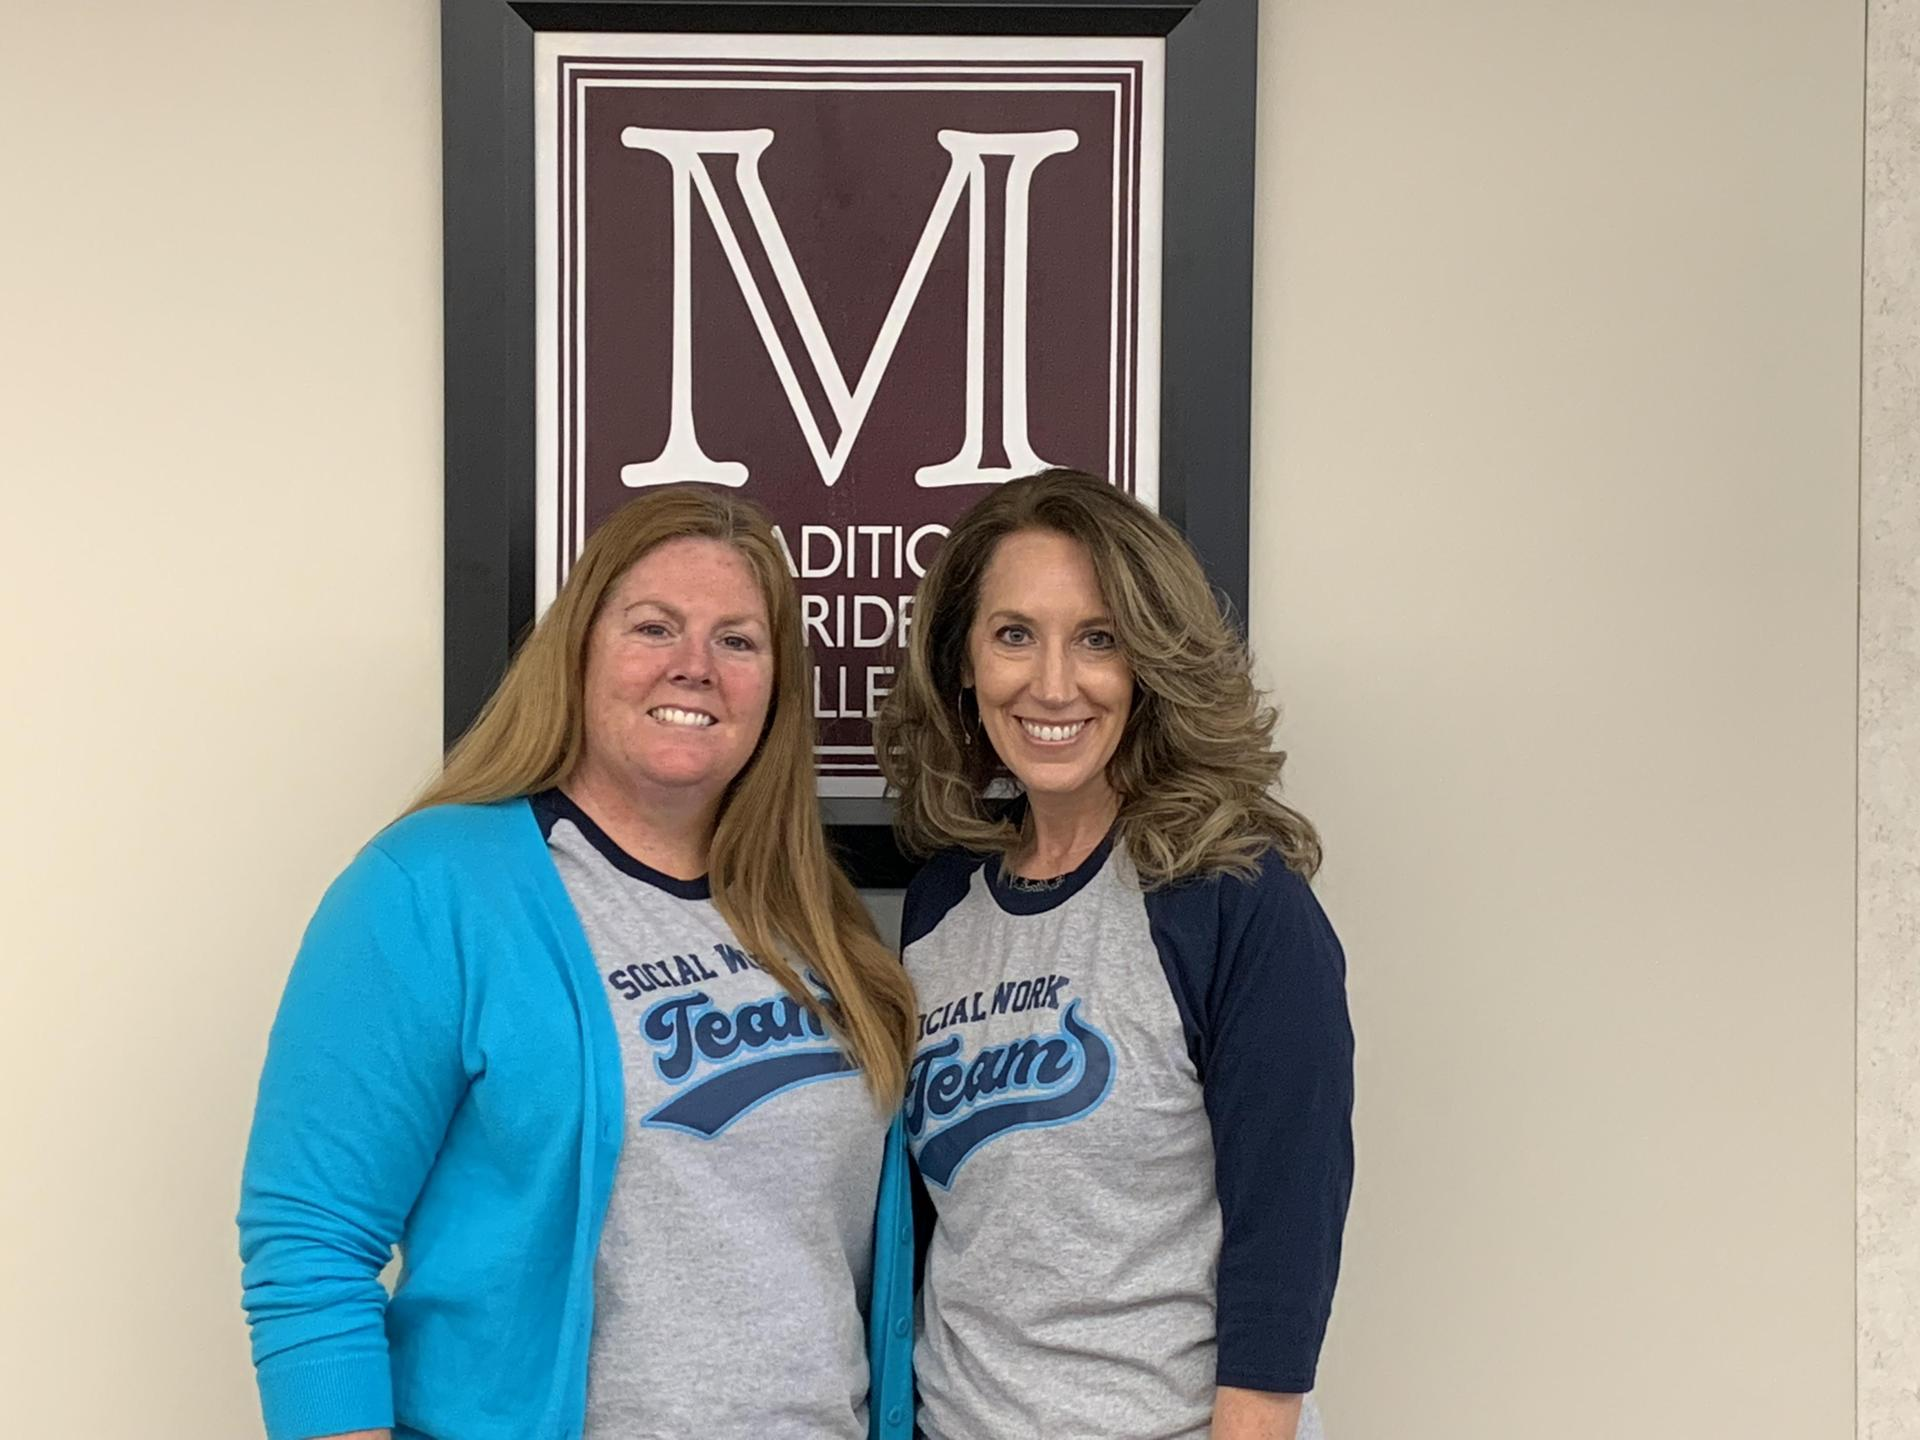 Our School Social Workers: Mrs. Long and Mrs. Daniel